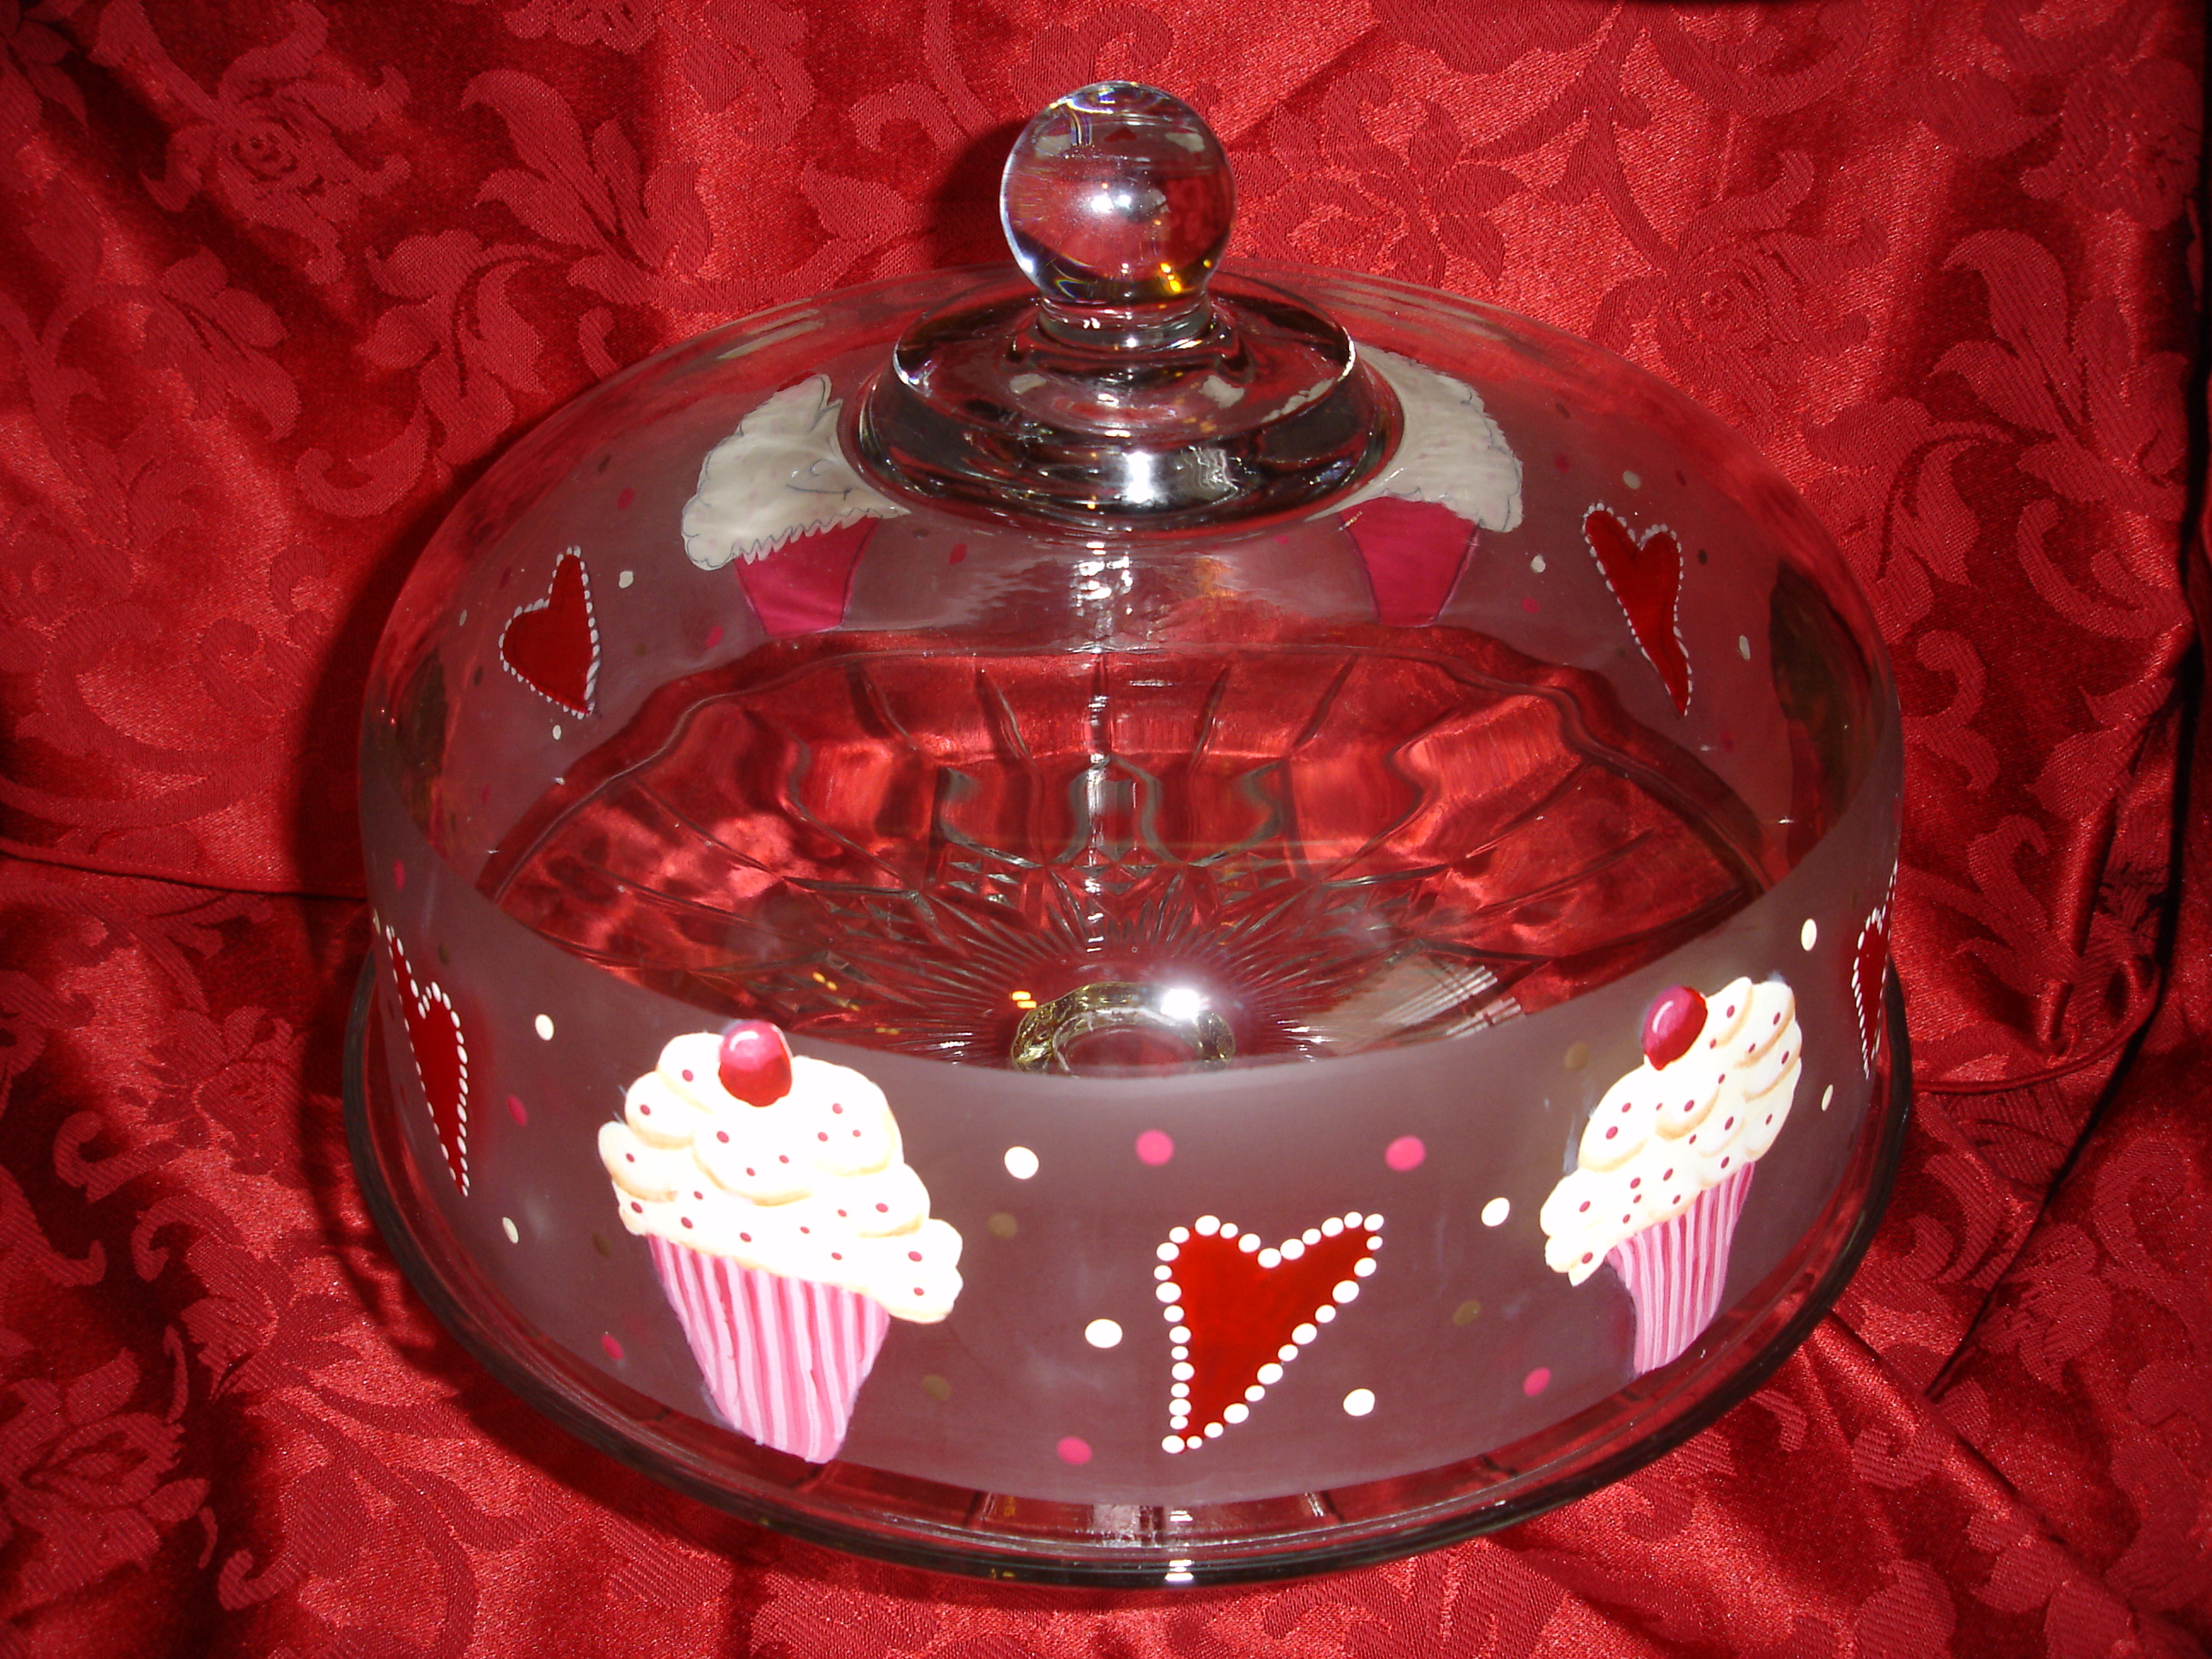 Cupcake Dome by Vicki Alley